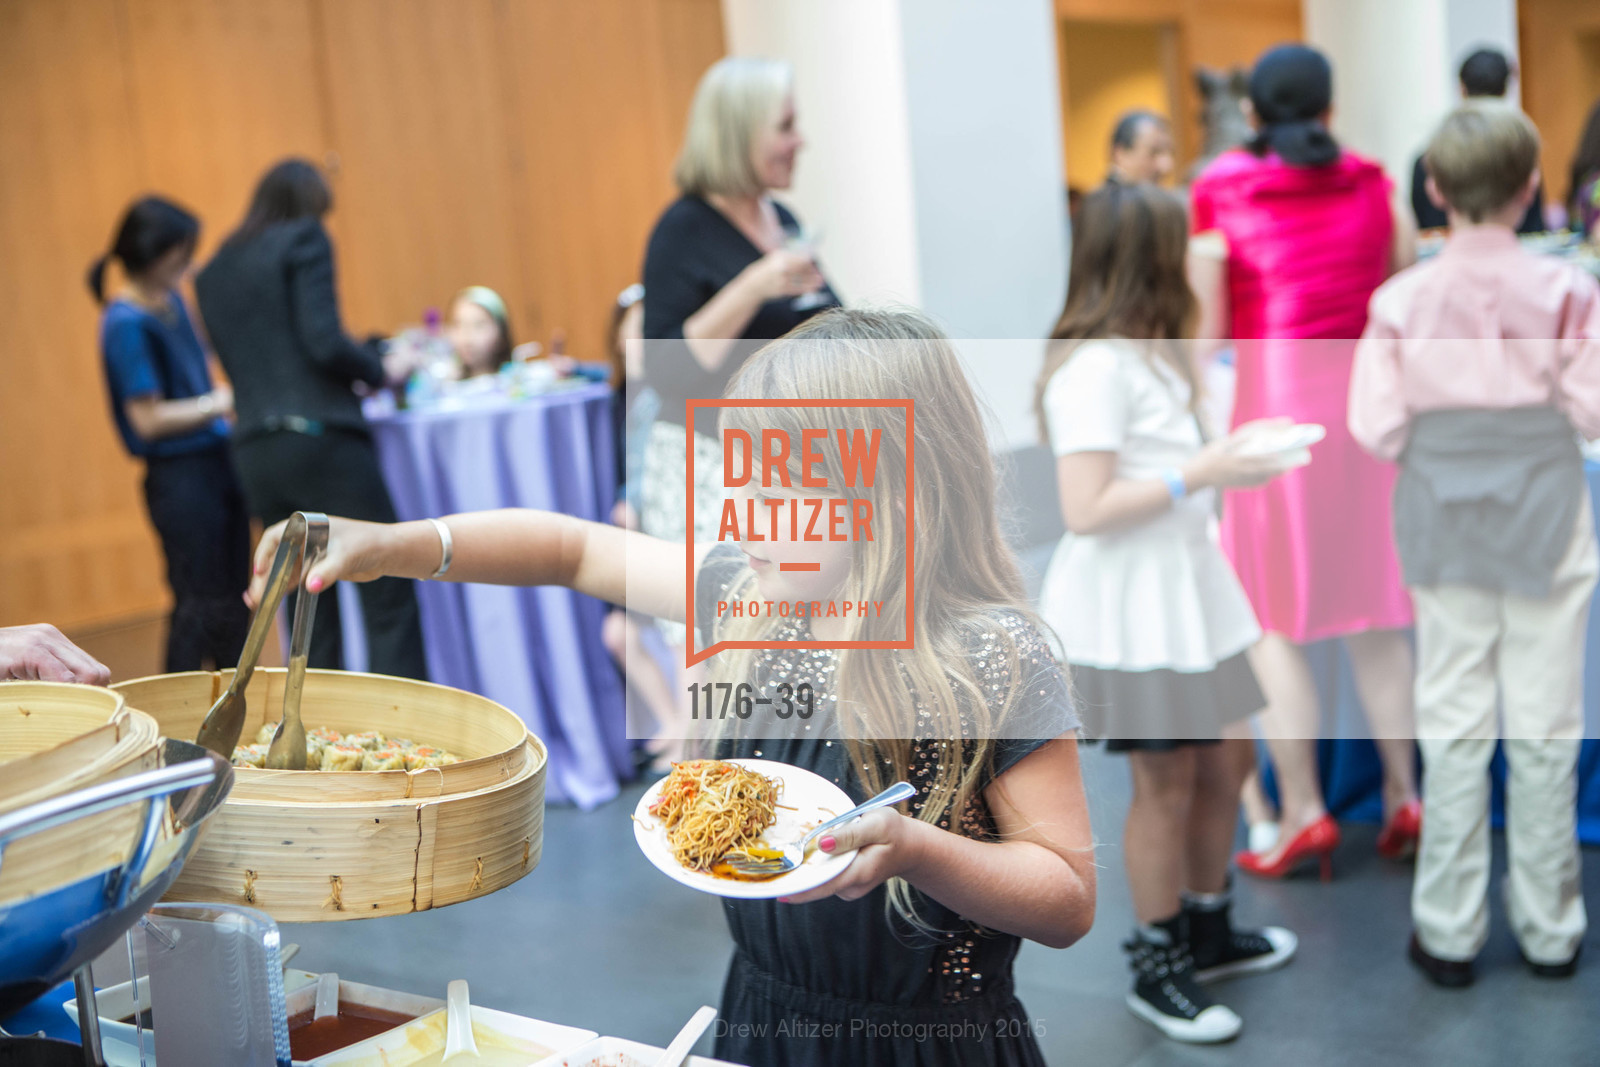 Extras, ASIAN ART MUSEUM Presents Once Upon a Time in Tokyo, April 17th, 2015, Photo,Drew Altizer, Drew Altizer Photography, full-service event agency, private events, San Francisco photographer, photographer California